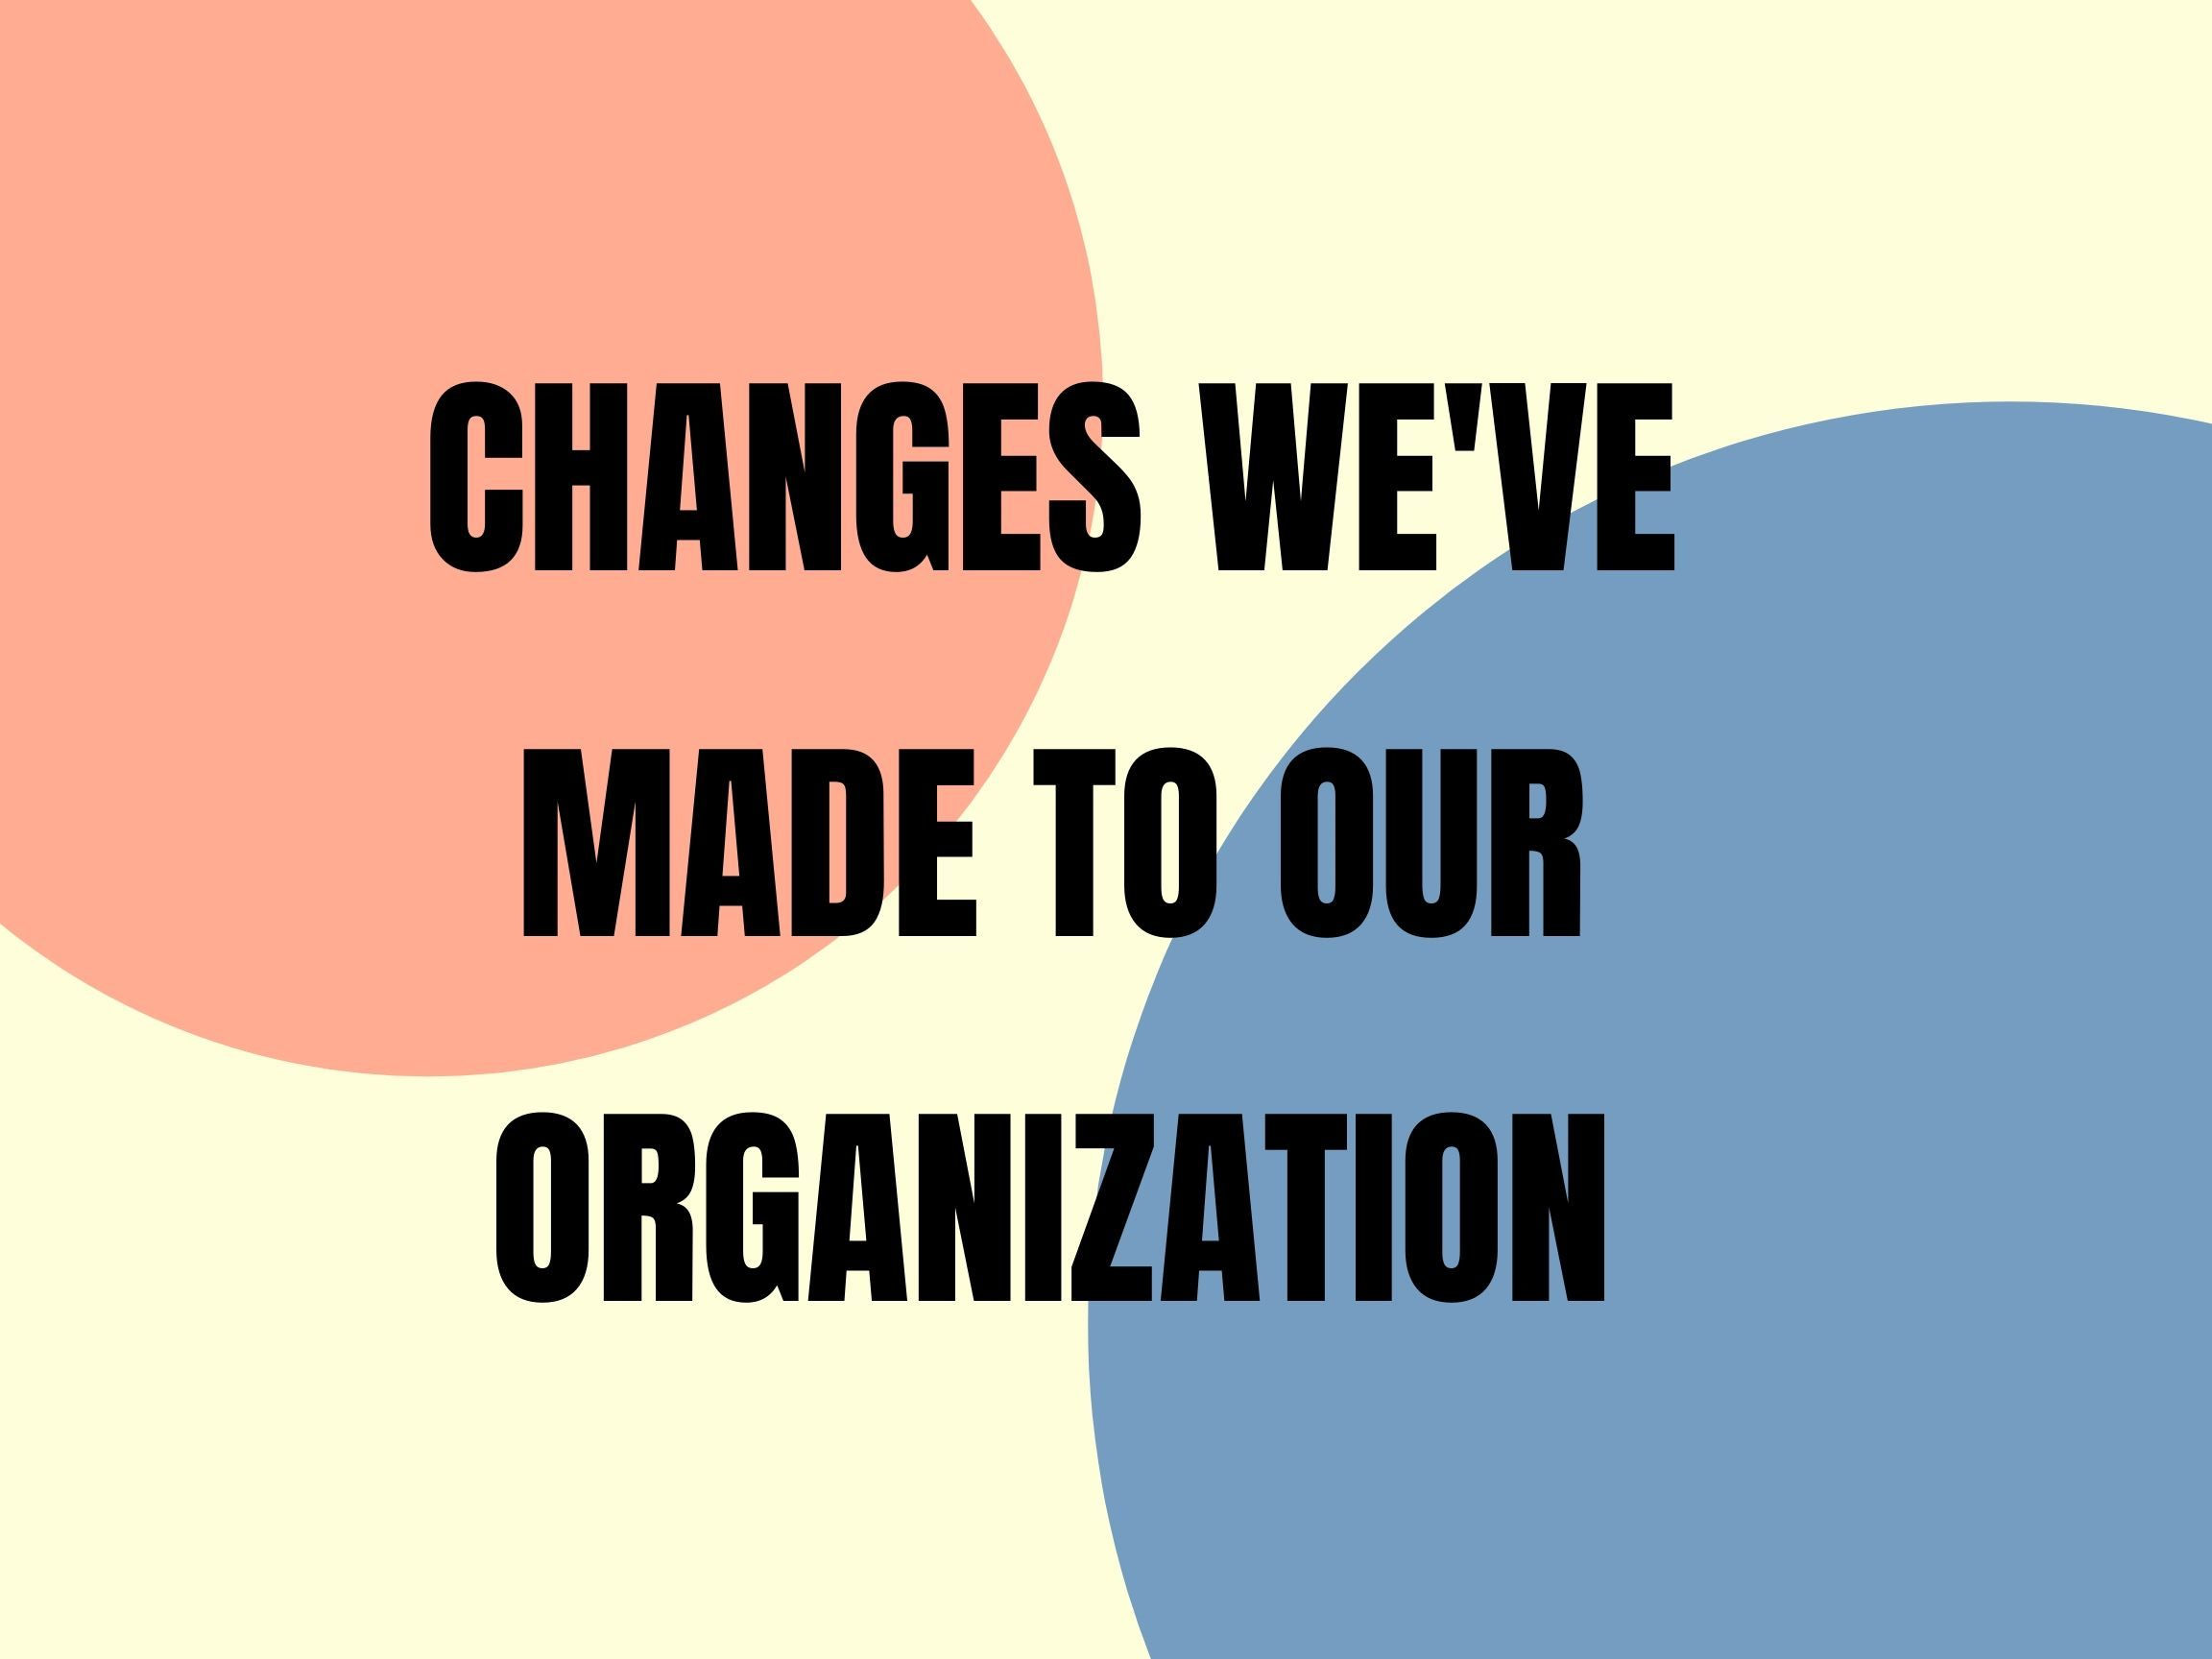 changes we've made to our organizatino with red and blue opaque circles